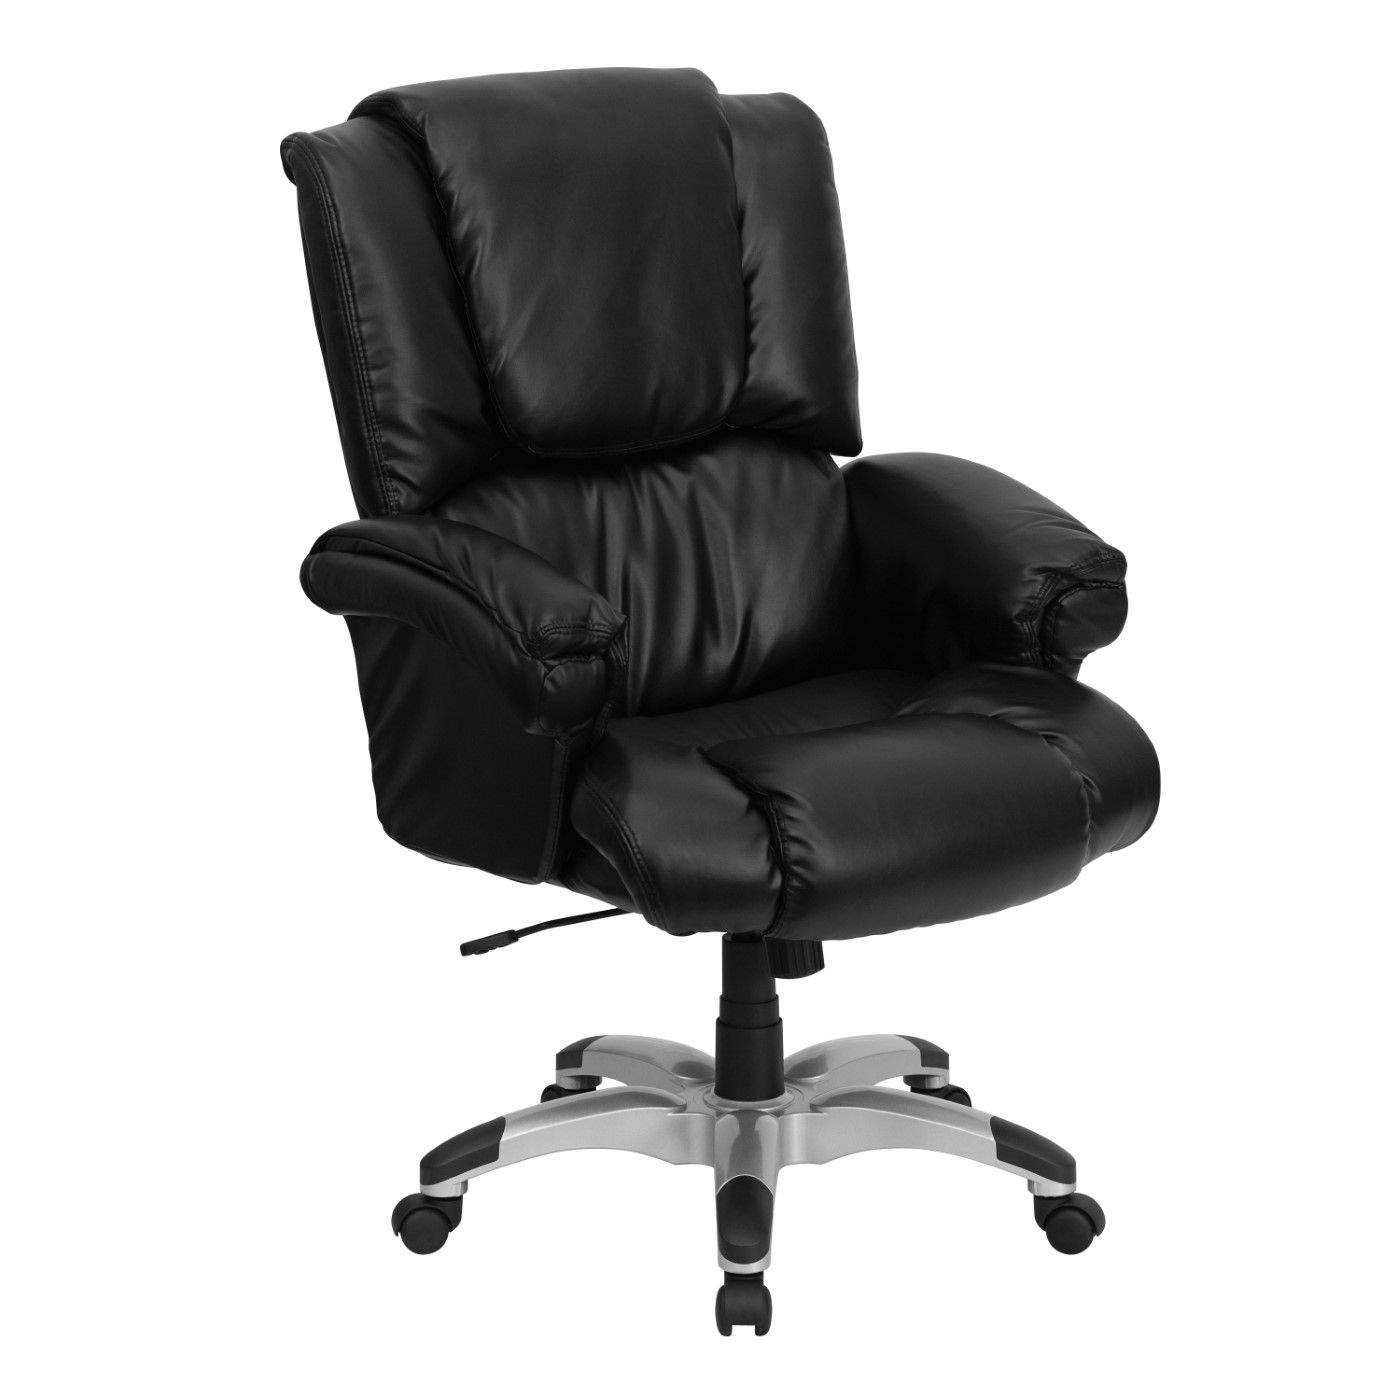 High Back Black LeatherSoft OverStuffed Executive Swivel Ergonomic Office Chair with Fully Upholstered Arms